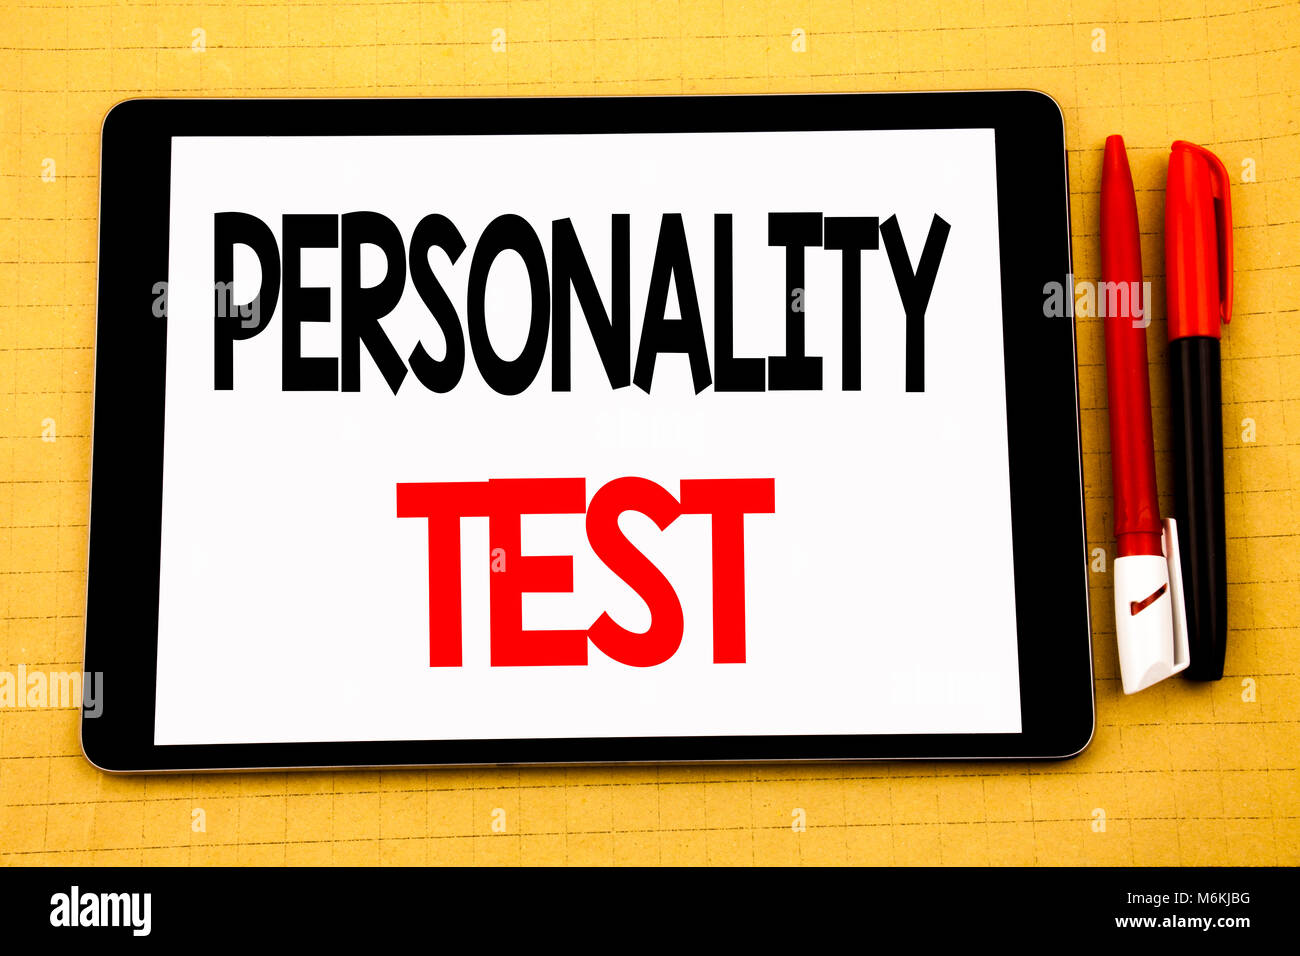 Conceptual handwriting text caption inspiration showing Personality Test. Business concept for Attitude Assessment - Stock Image